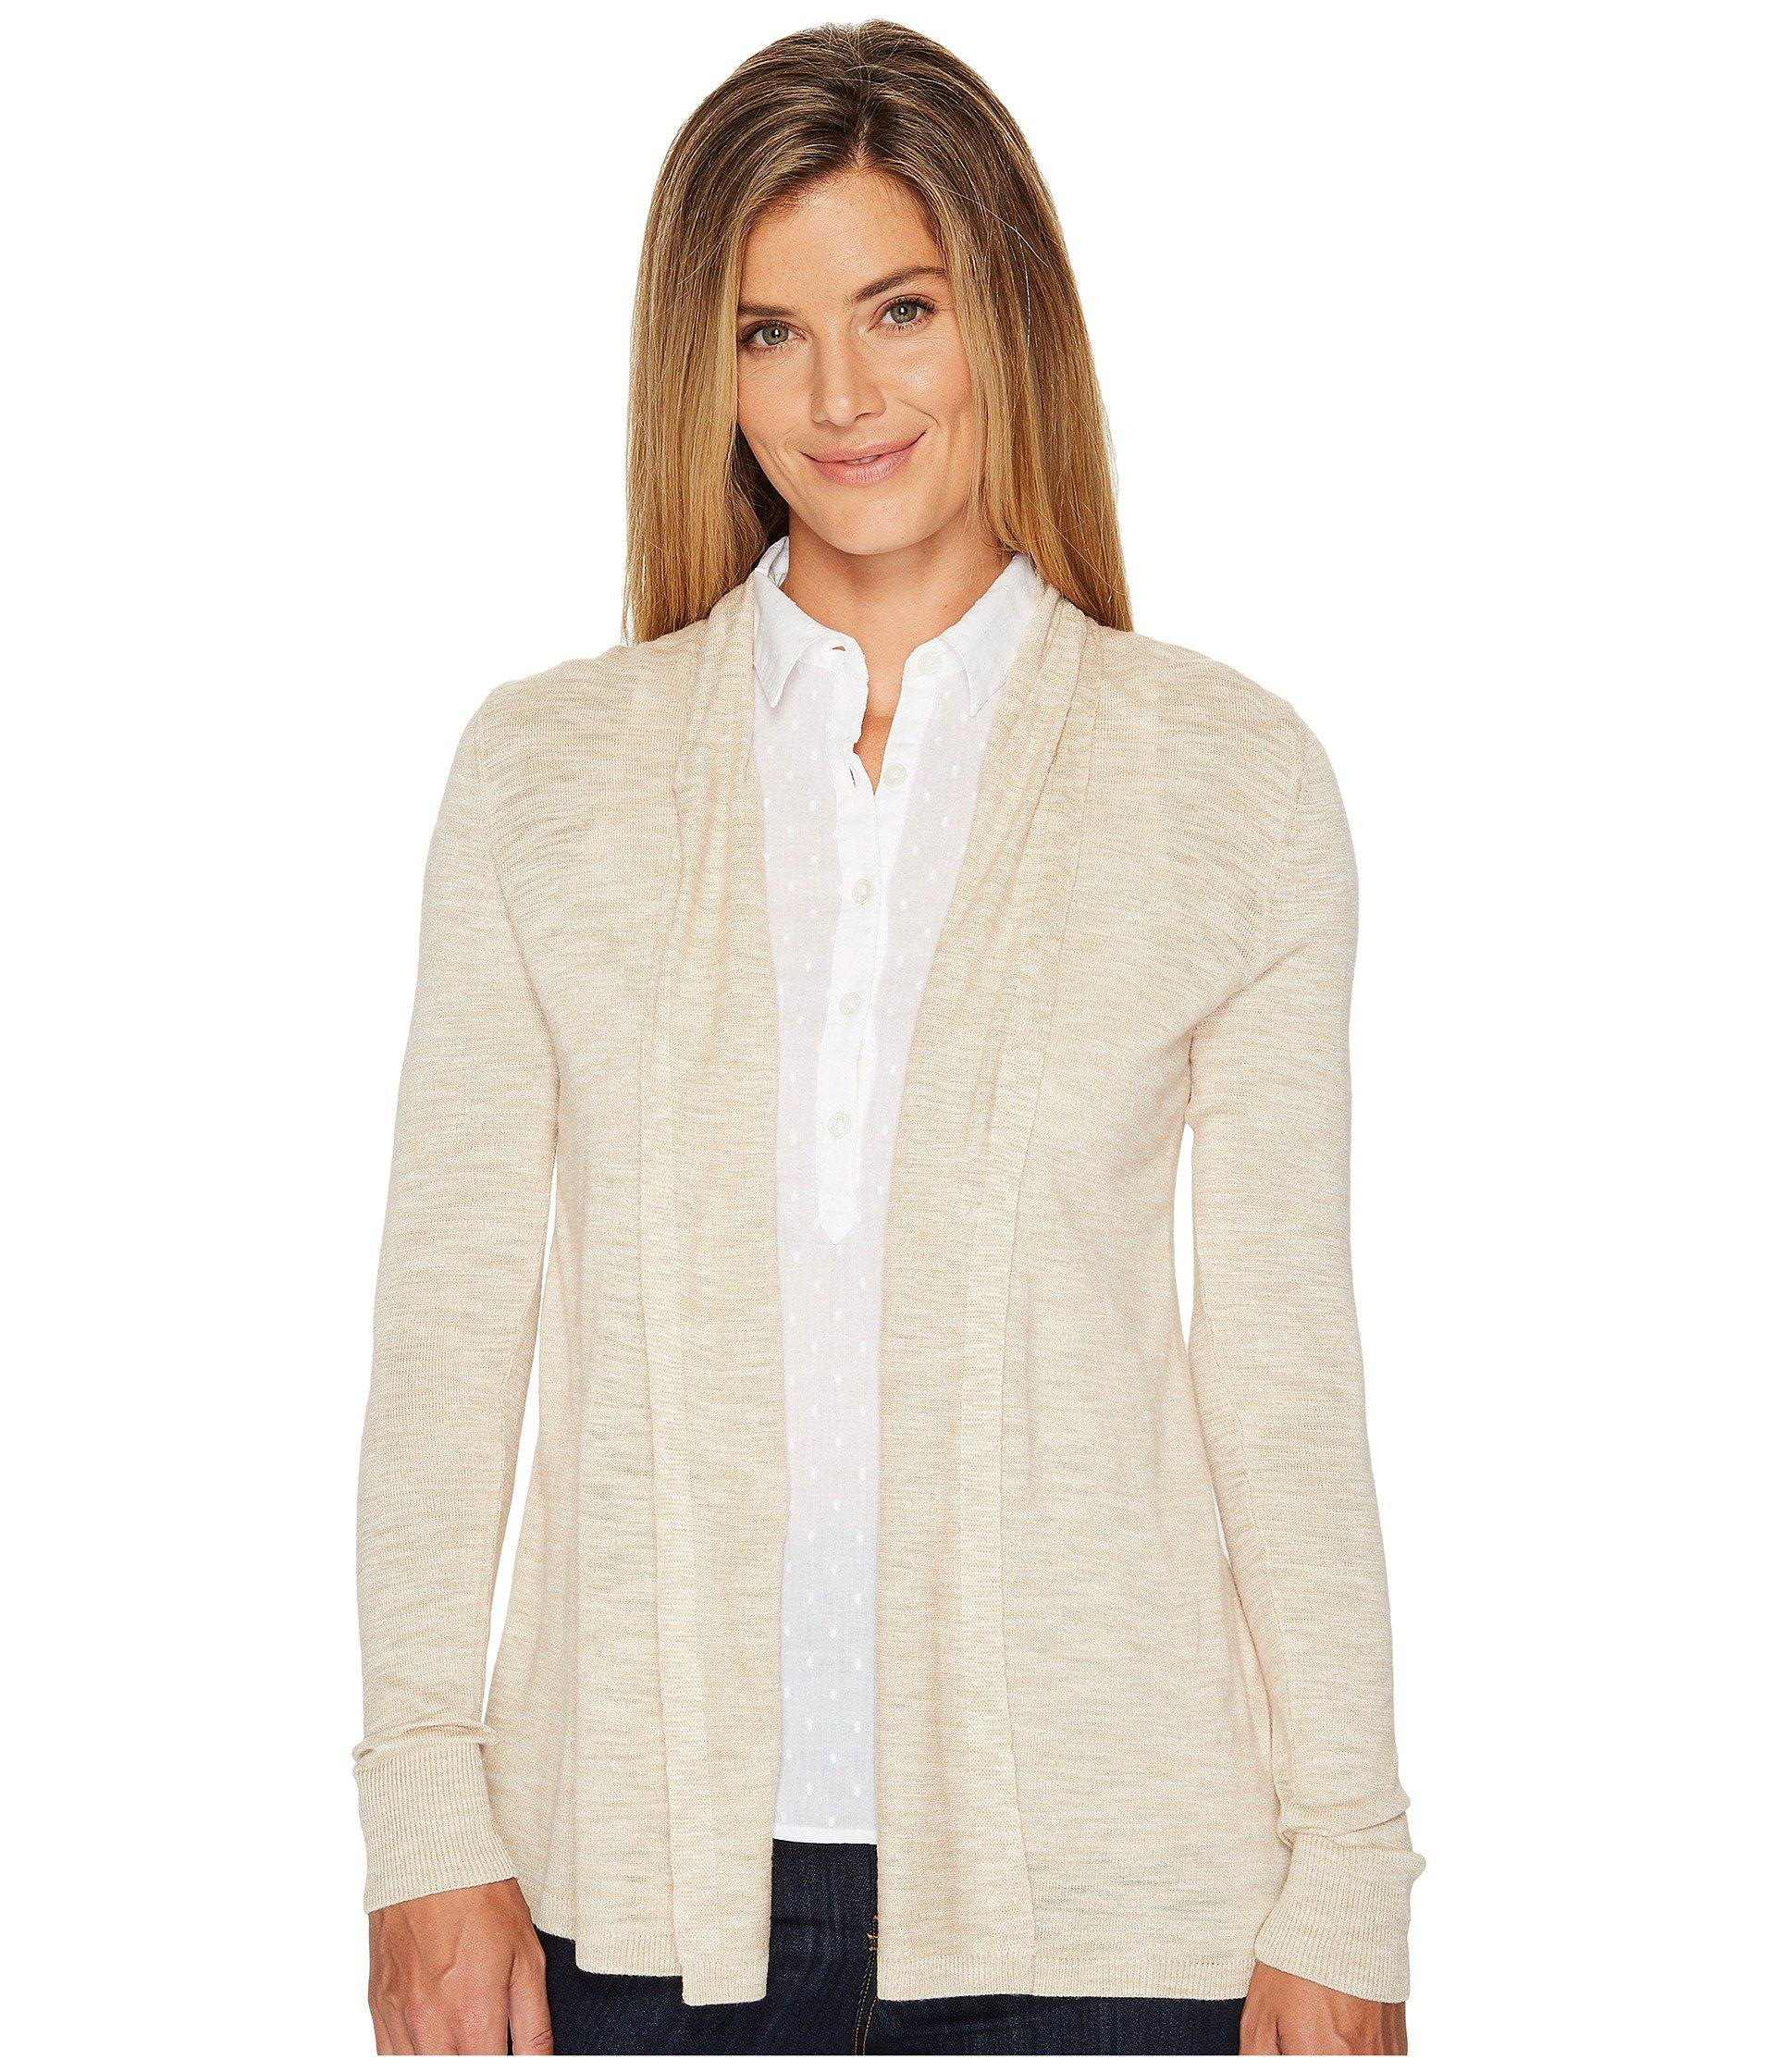 b56e6f07829deb Lyst - Aventura Clothing Corinne Sweater in White - Save 44%